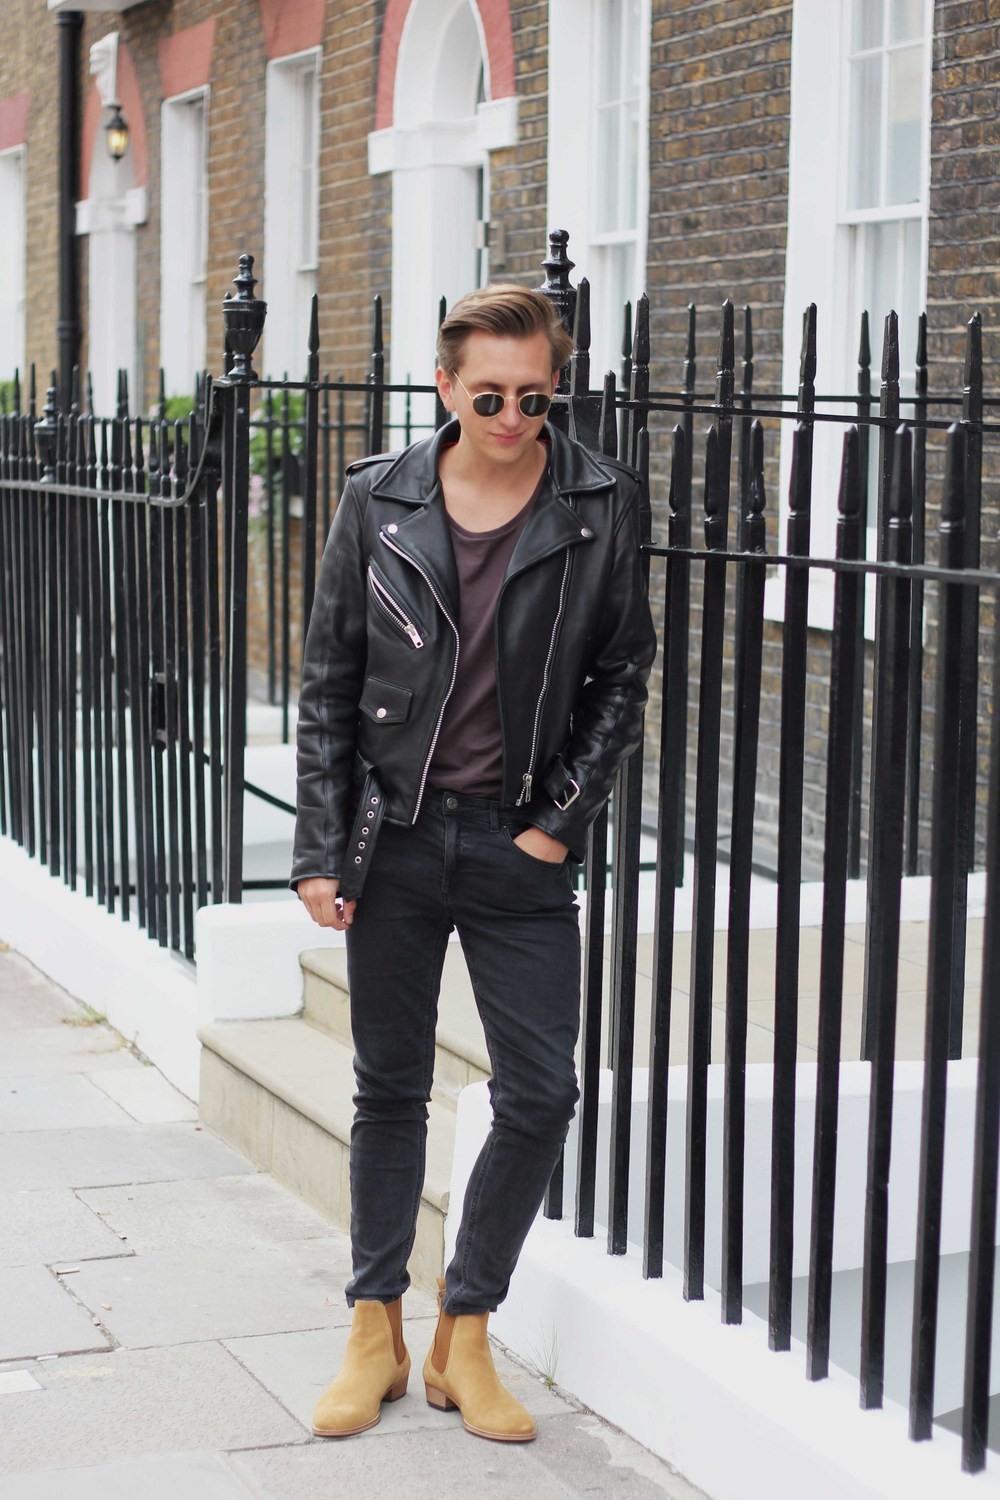 rockandroll_acnestudios_rayban_ootd_menswear_mensfashion_london_marylebone_leatherjacket_biker